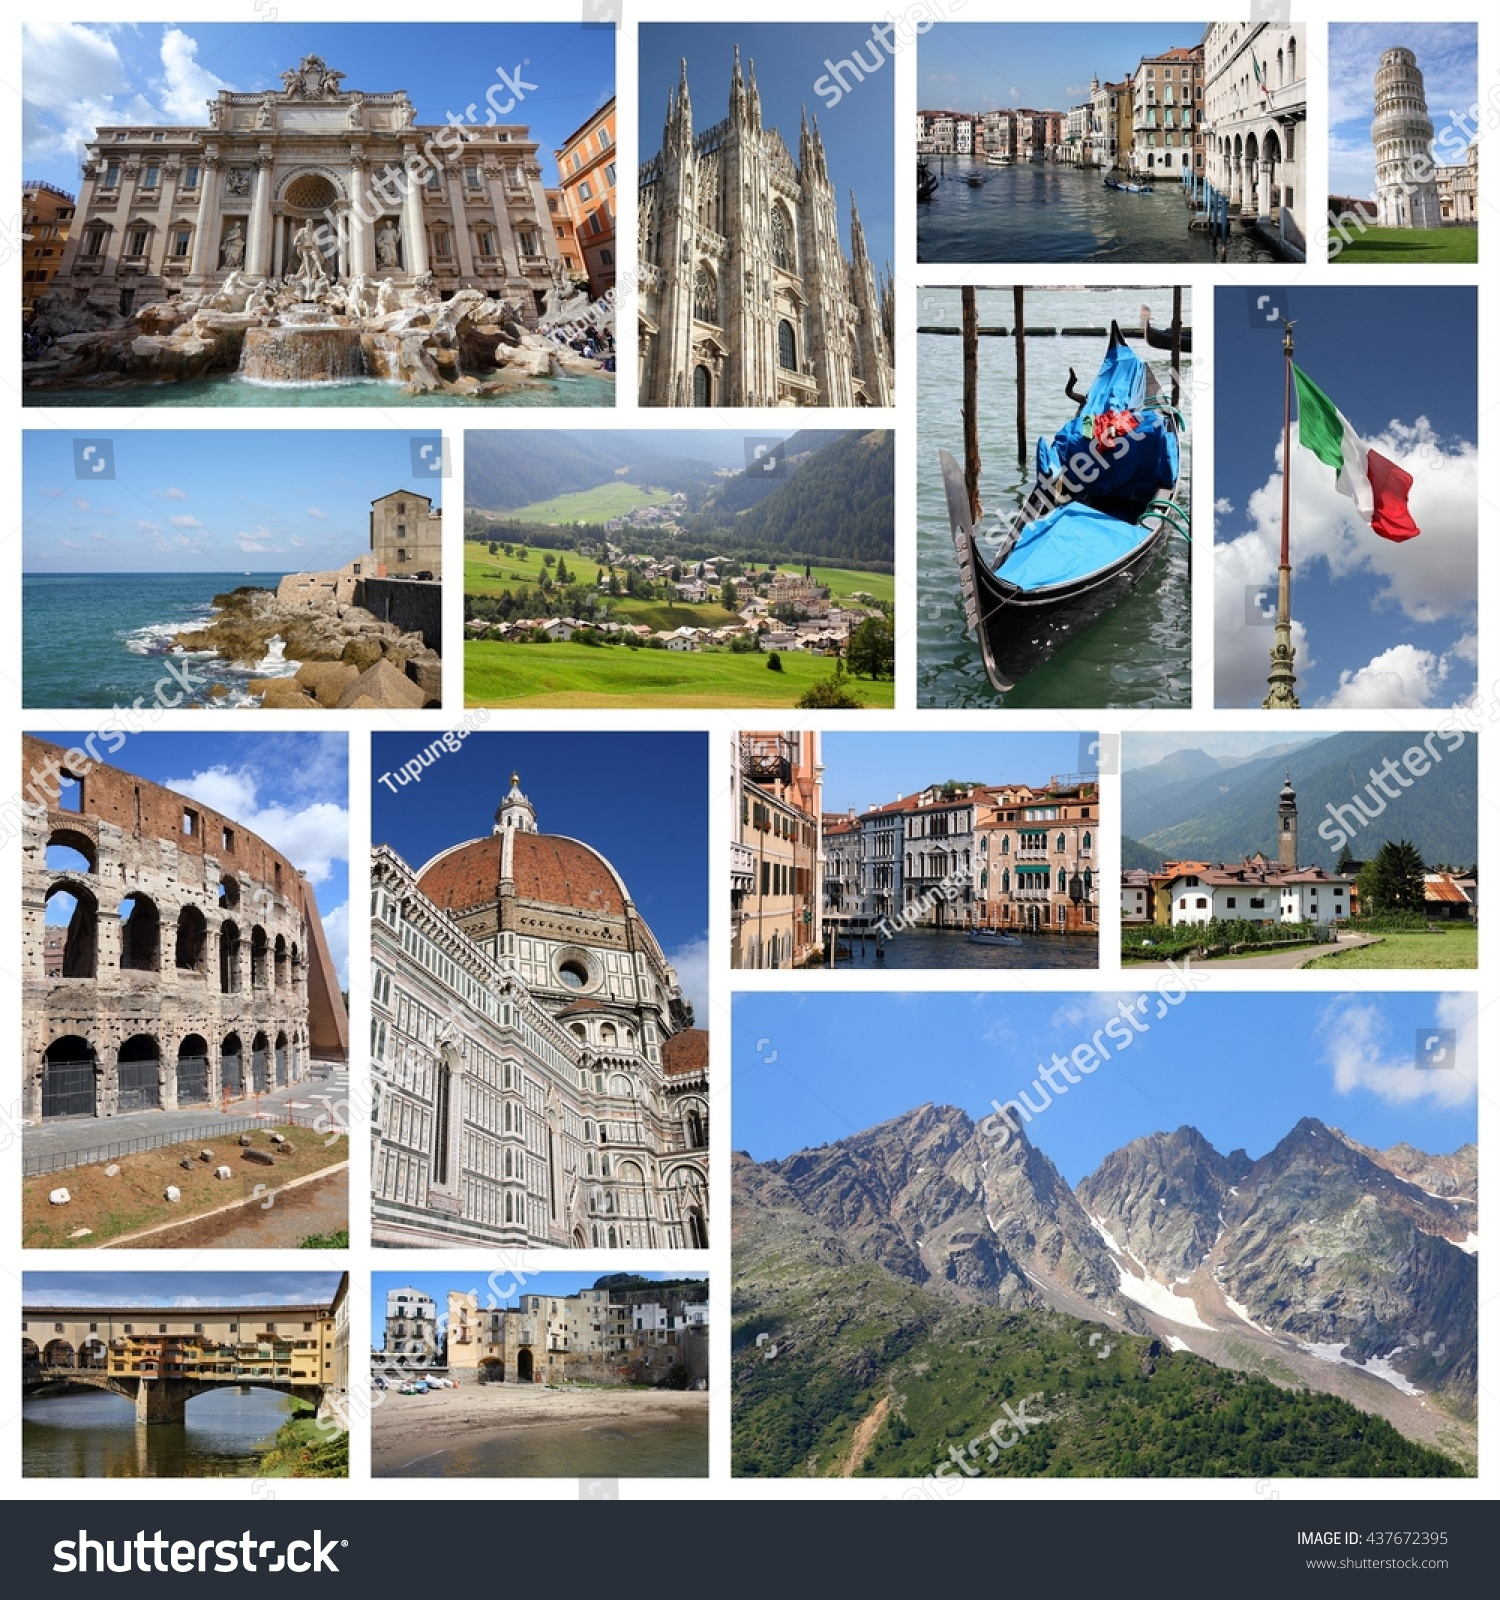 Italy Tourism Attractions Travel Collage Stock Download